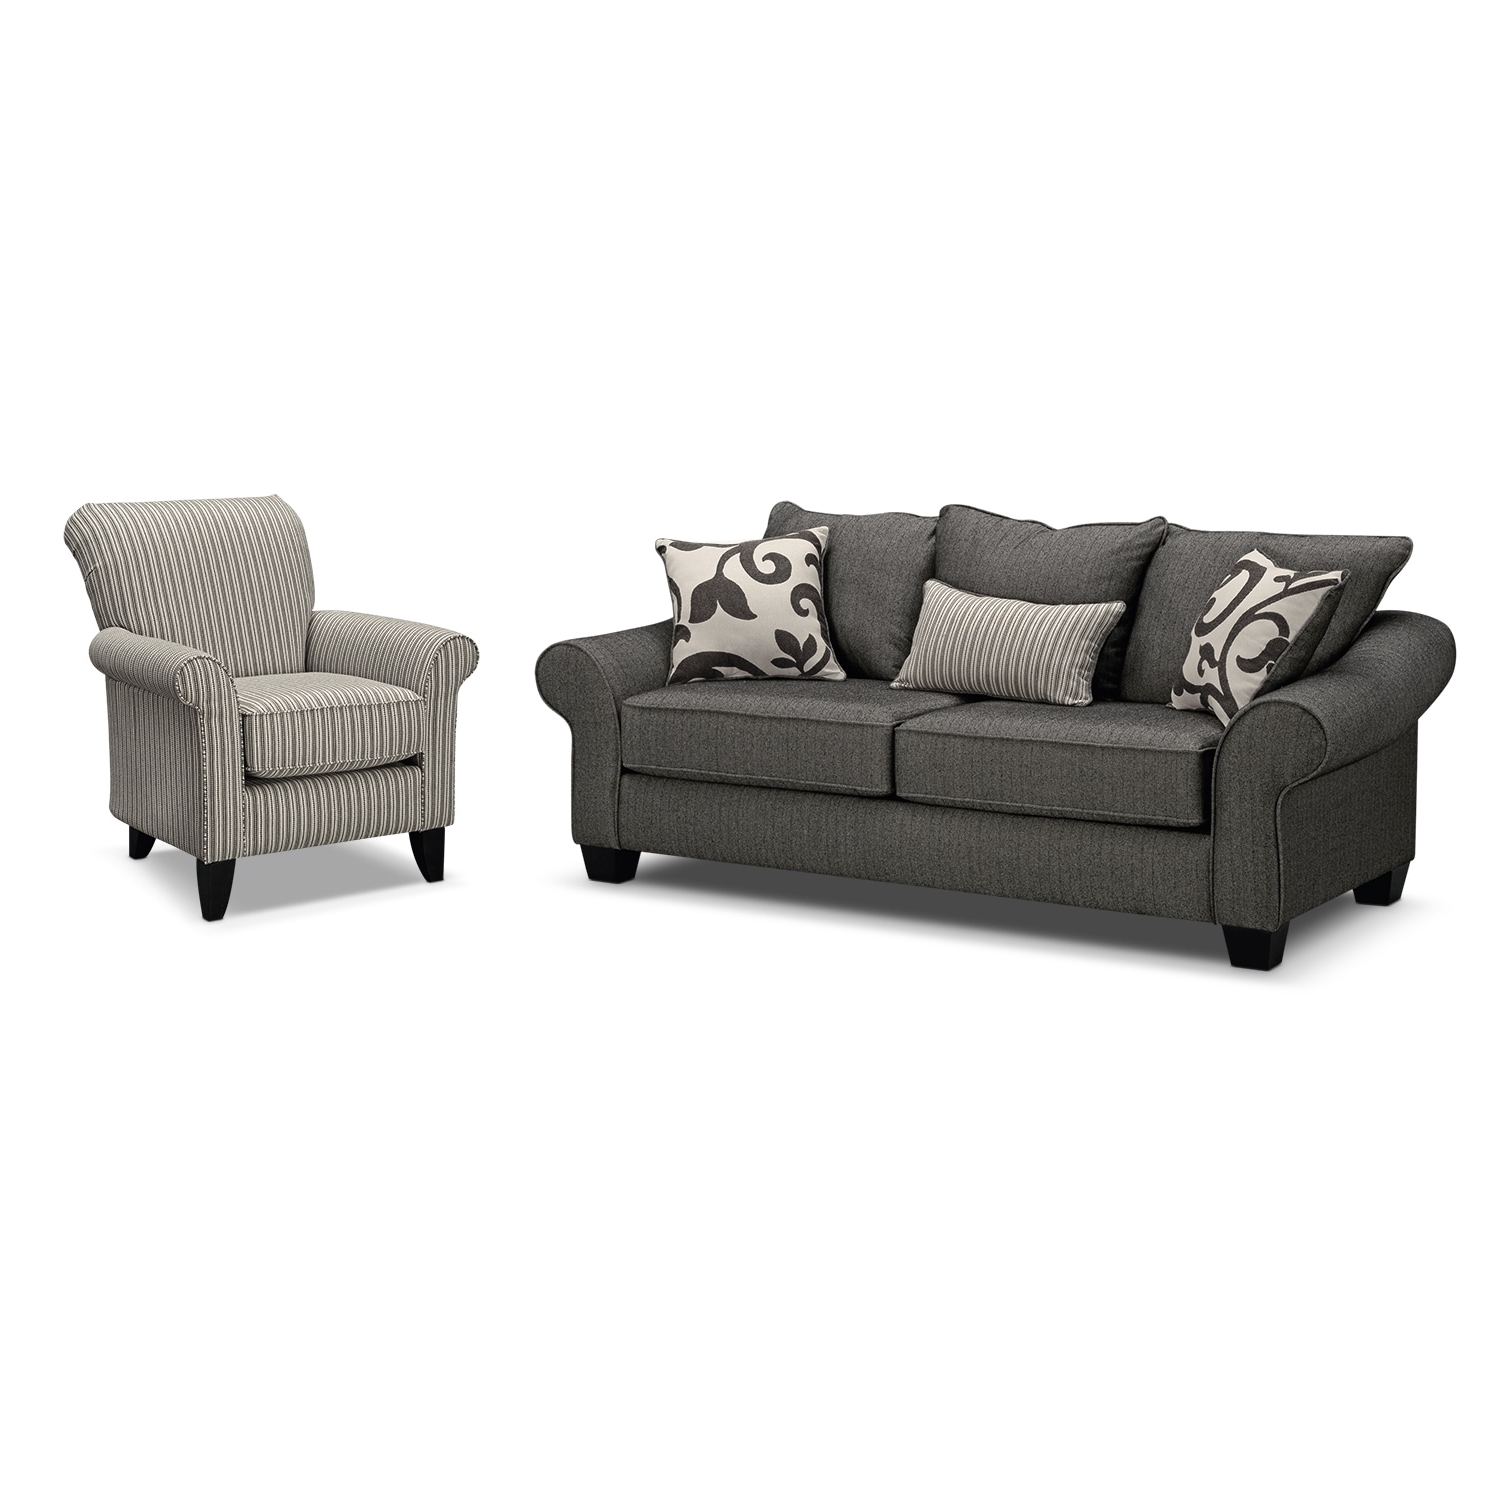 Value City Furniture Intended For Sofa And Accent Chair Sets (Gallery 8 of 20)